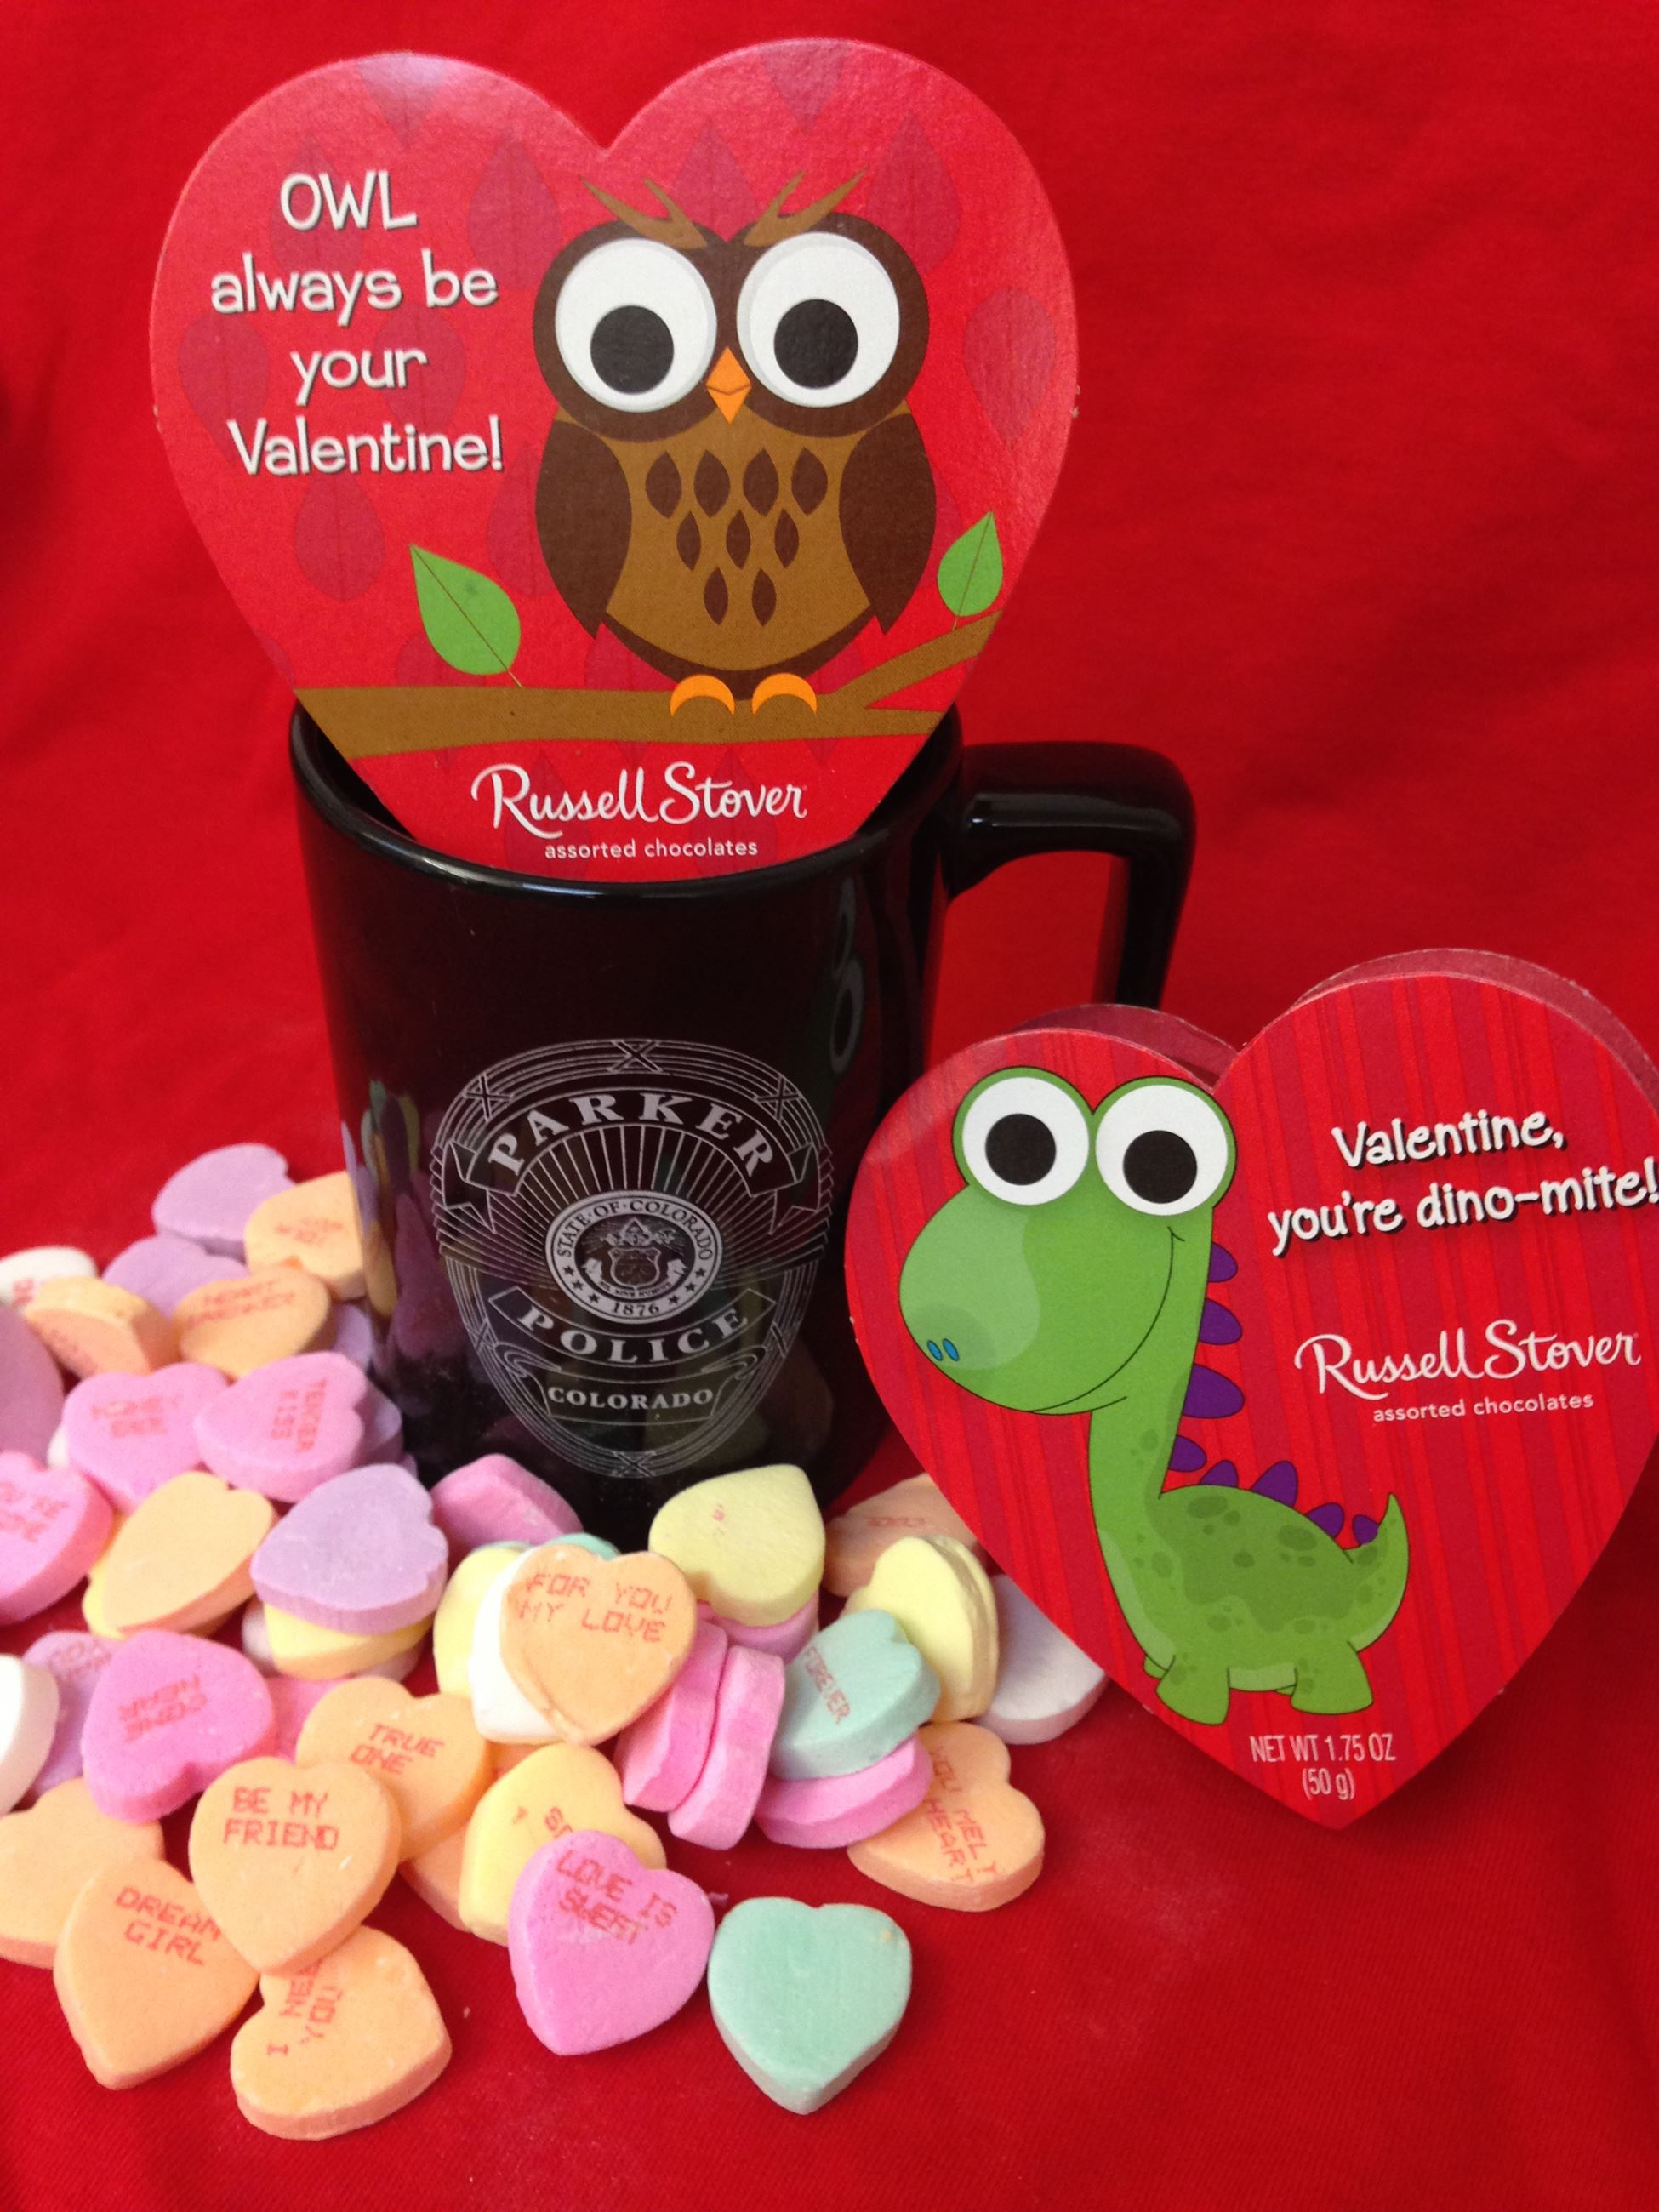 A Parker police department cup surrounded by candy hearts and two small boxes of candy